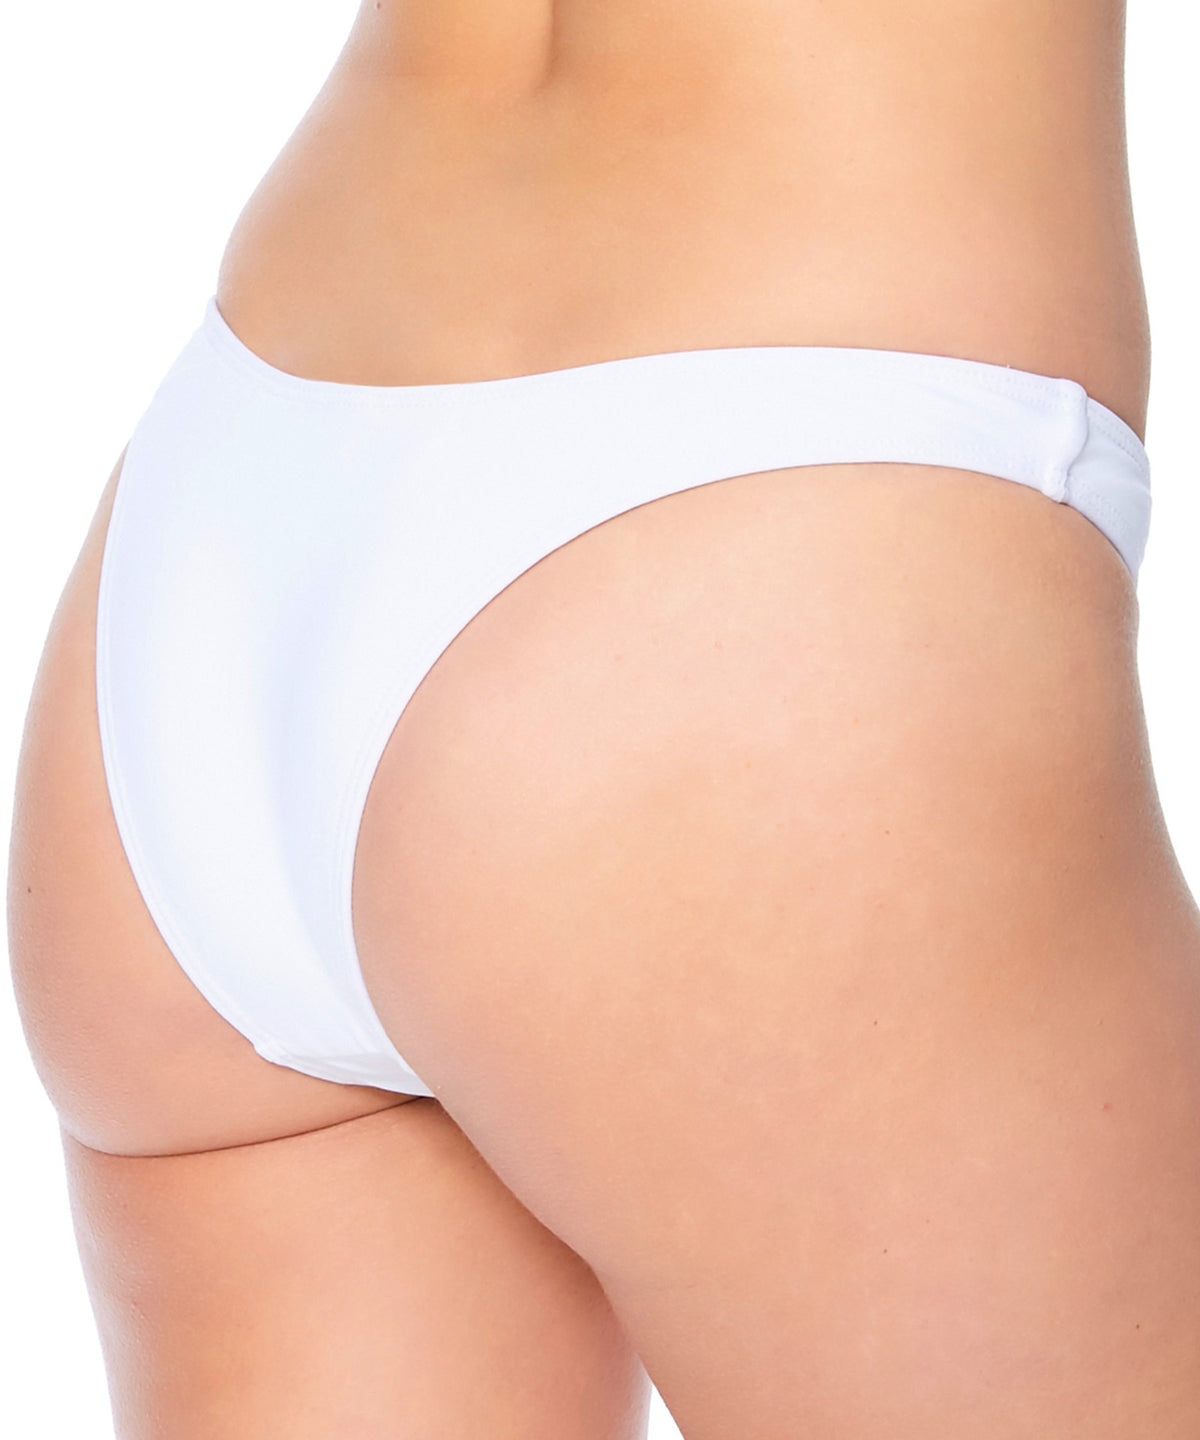 Minimale Animale Wall Street Women White Bikini Bottom